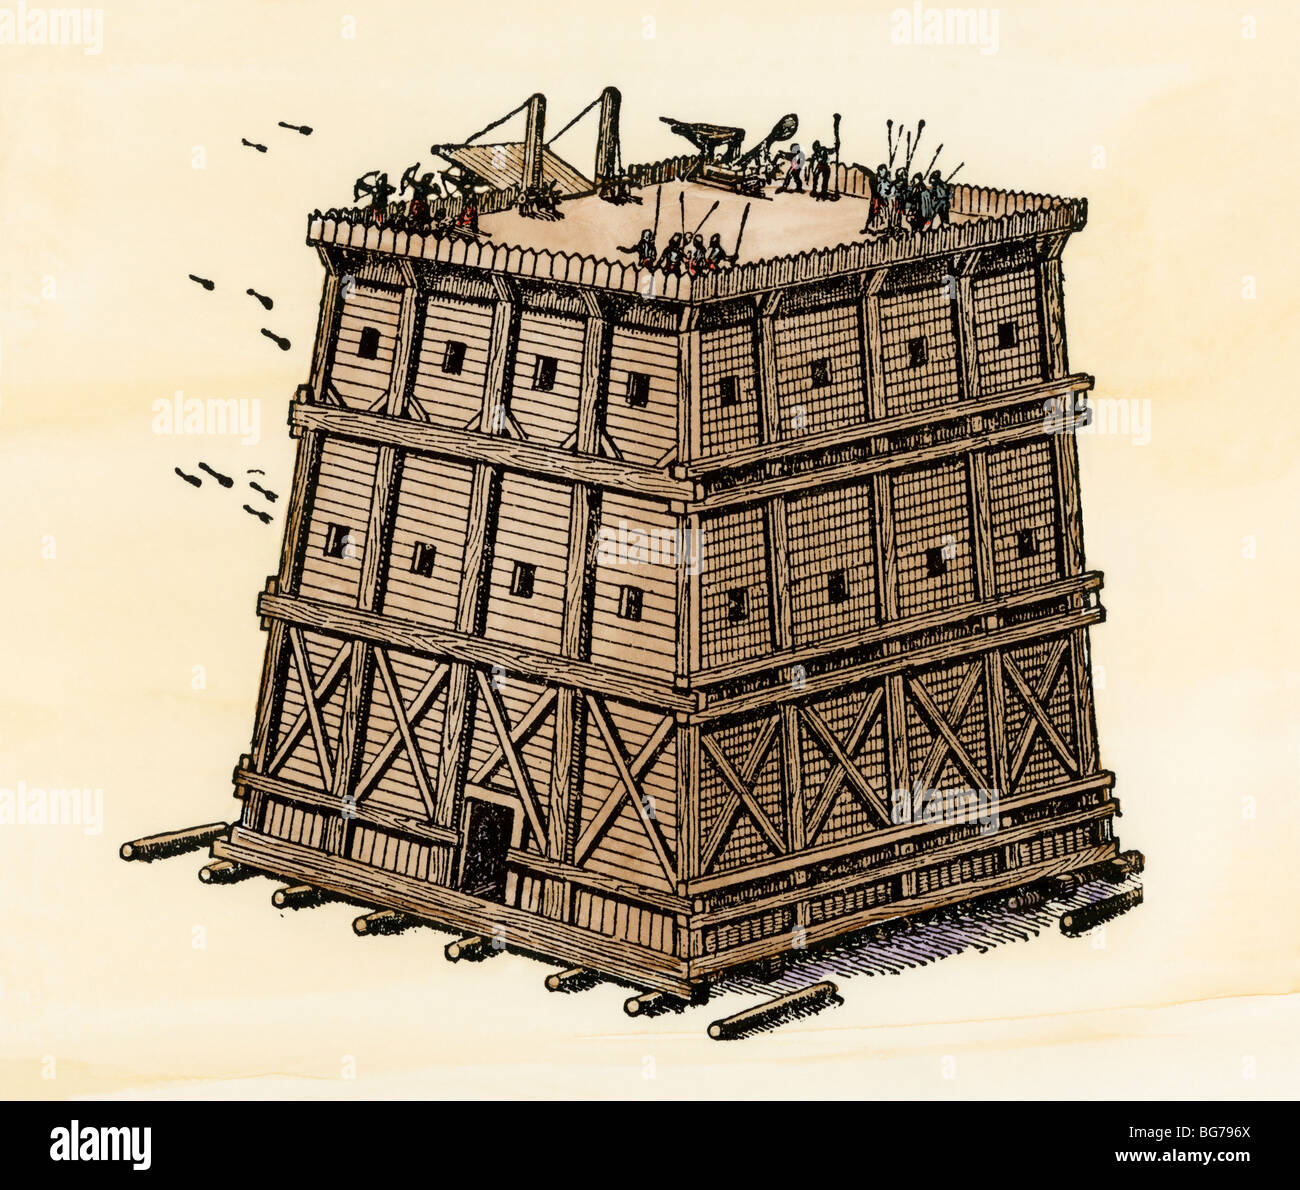 Siege machine, used in ancient and medieval warfare. Hand-colored woodcut - Stock Image